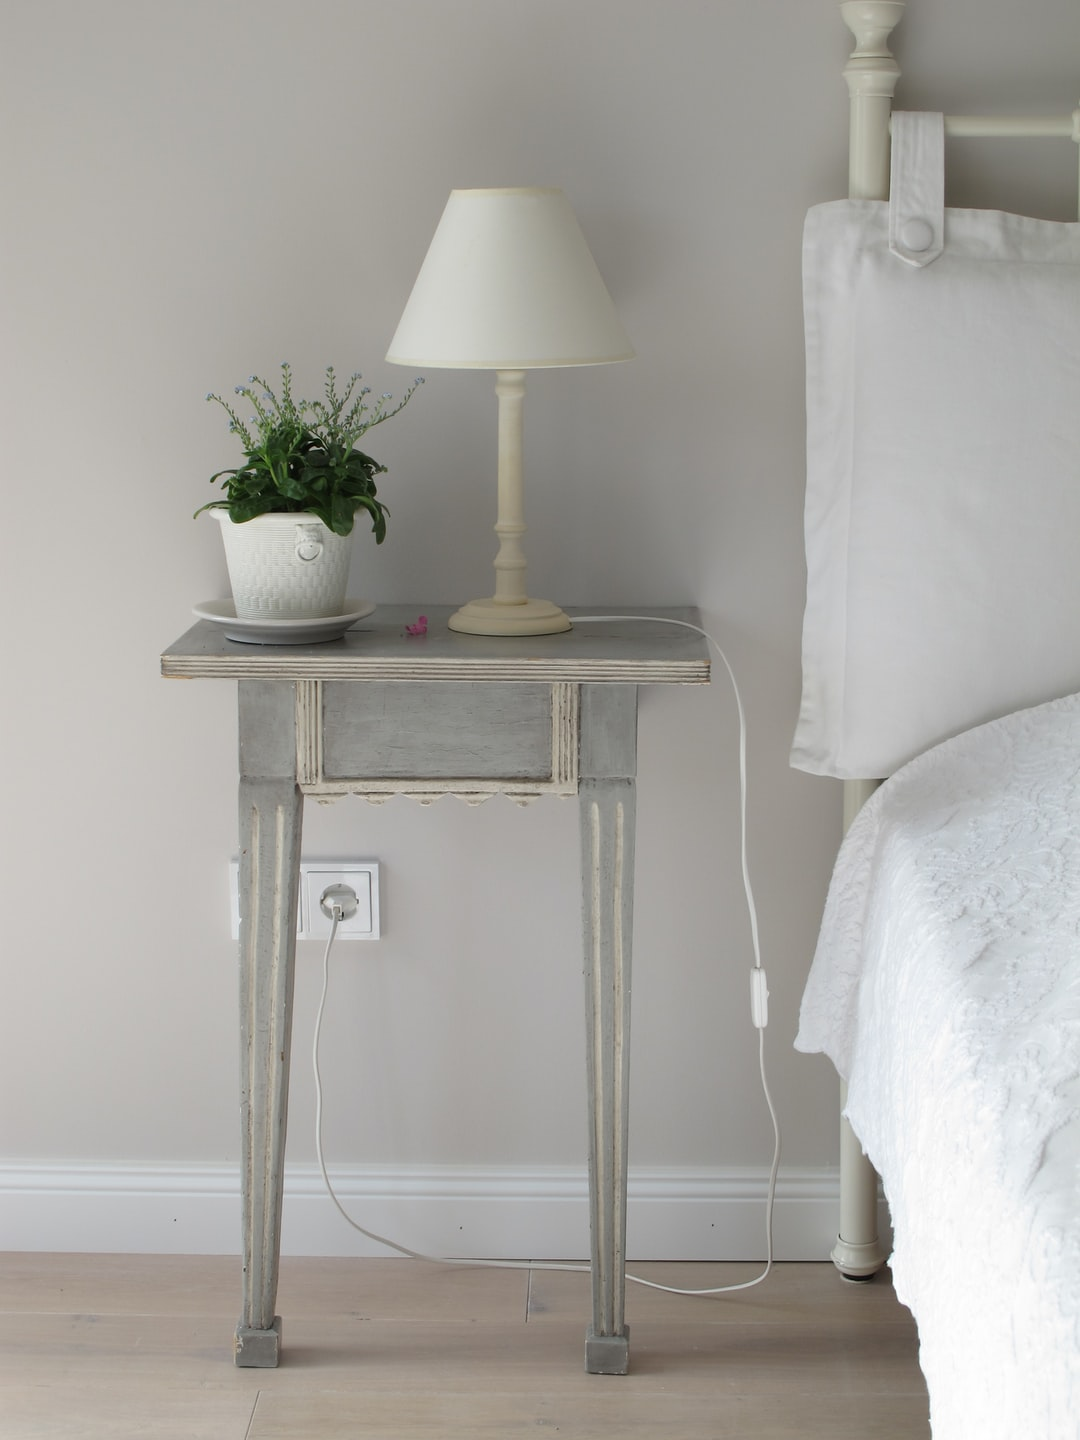 Bed lamp bedroom and white hd photo by cheryl winn for Mesillas de habitacion